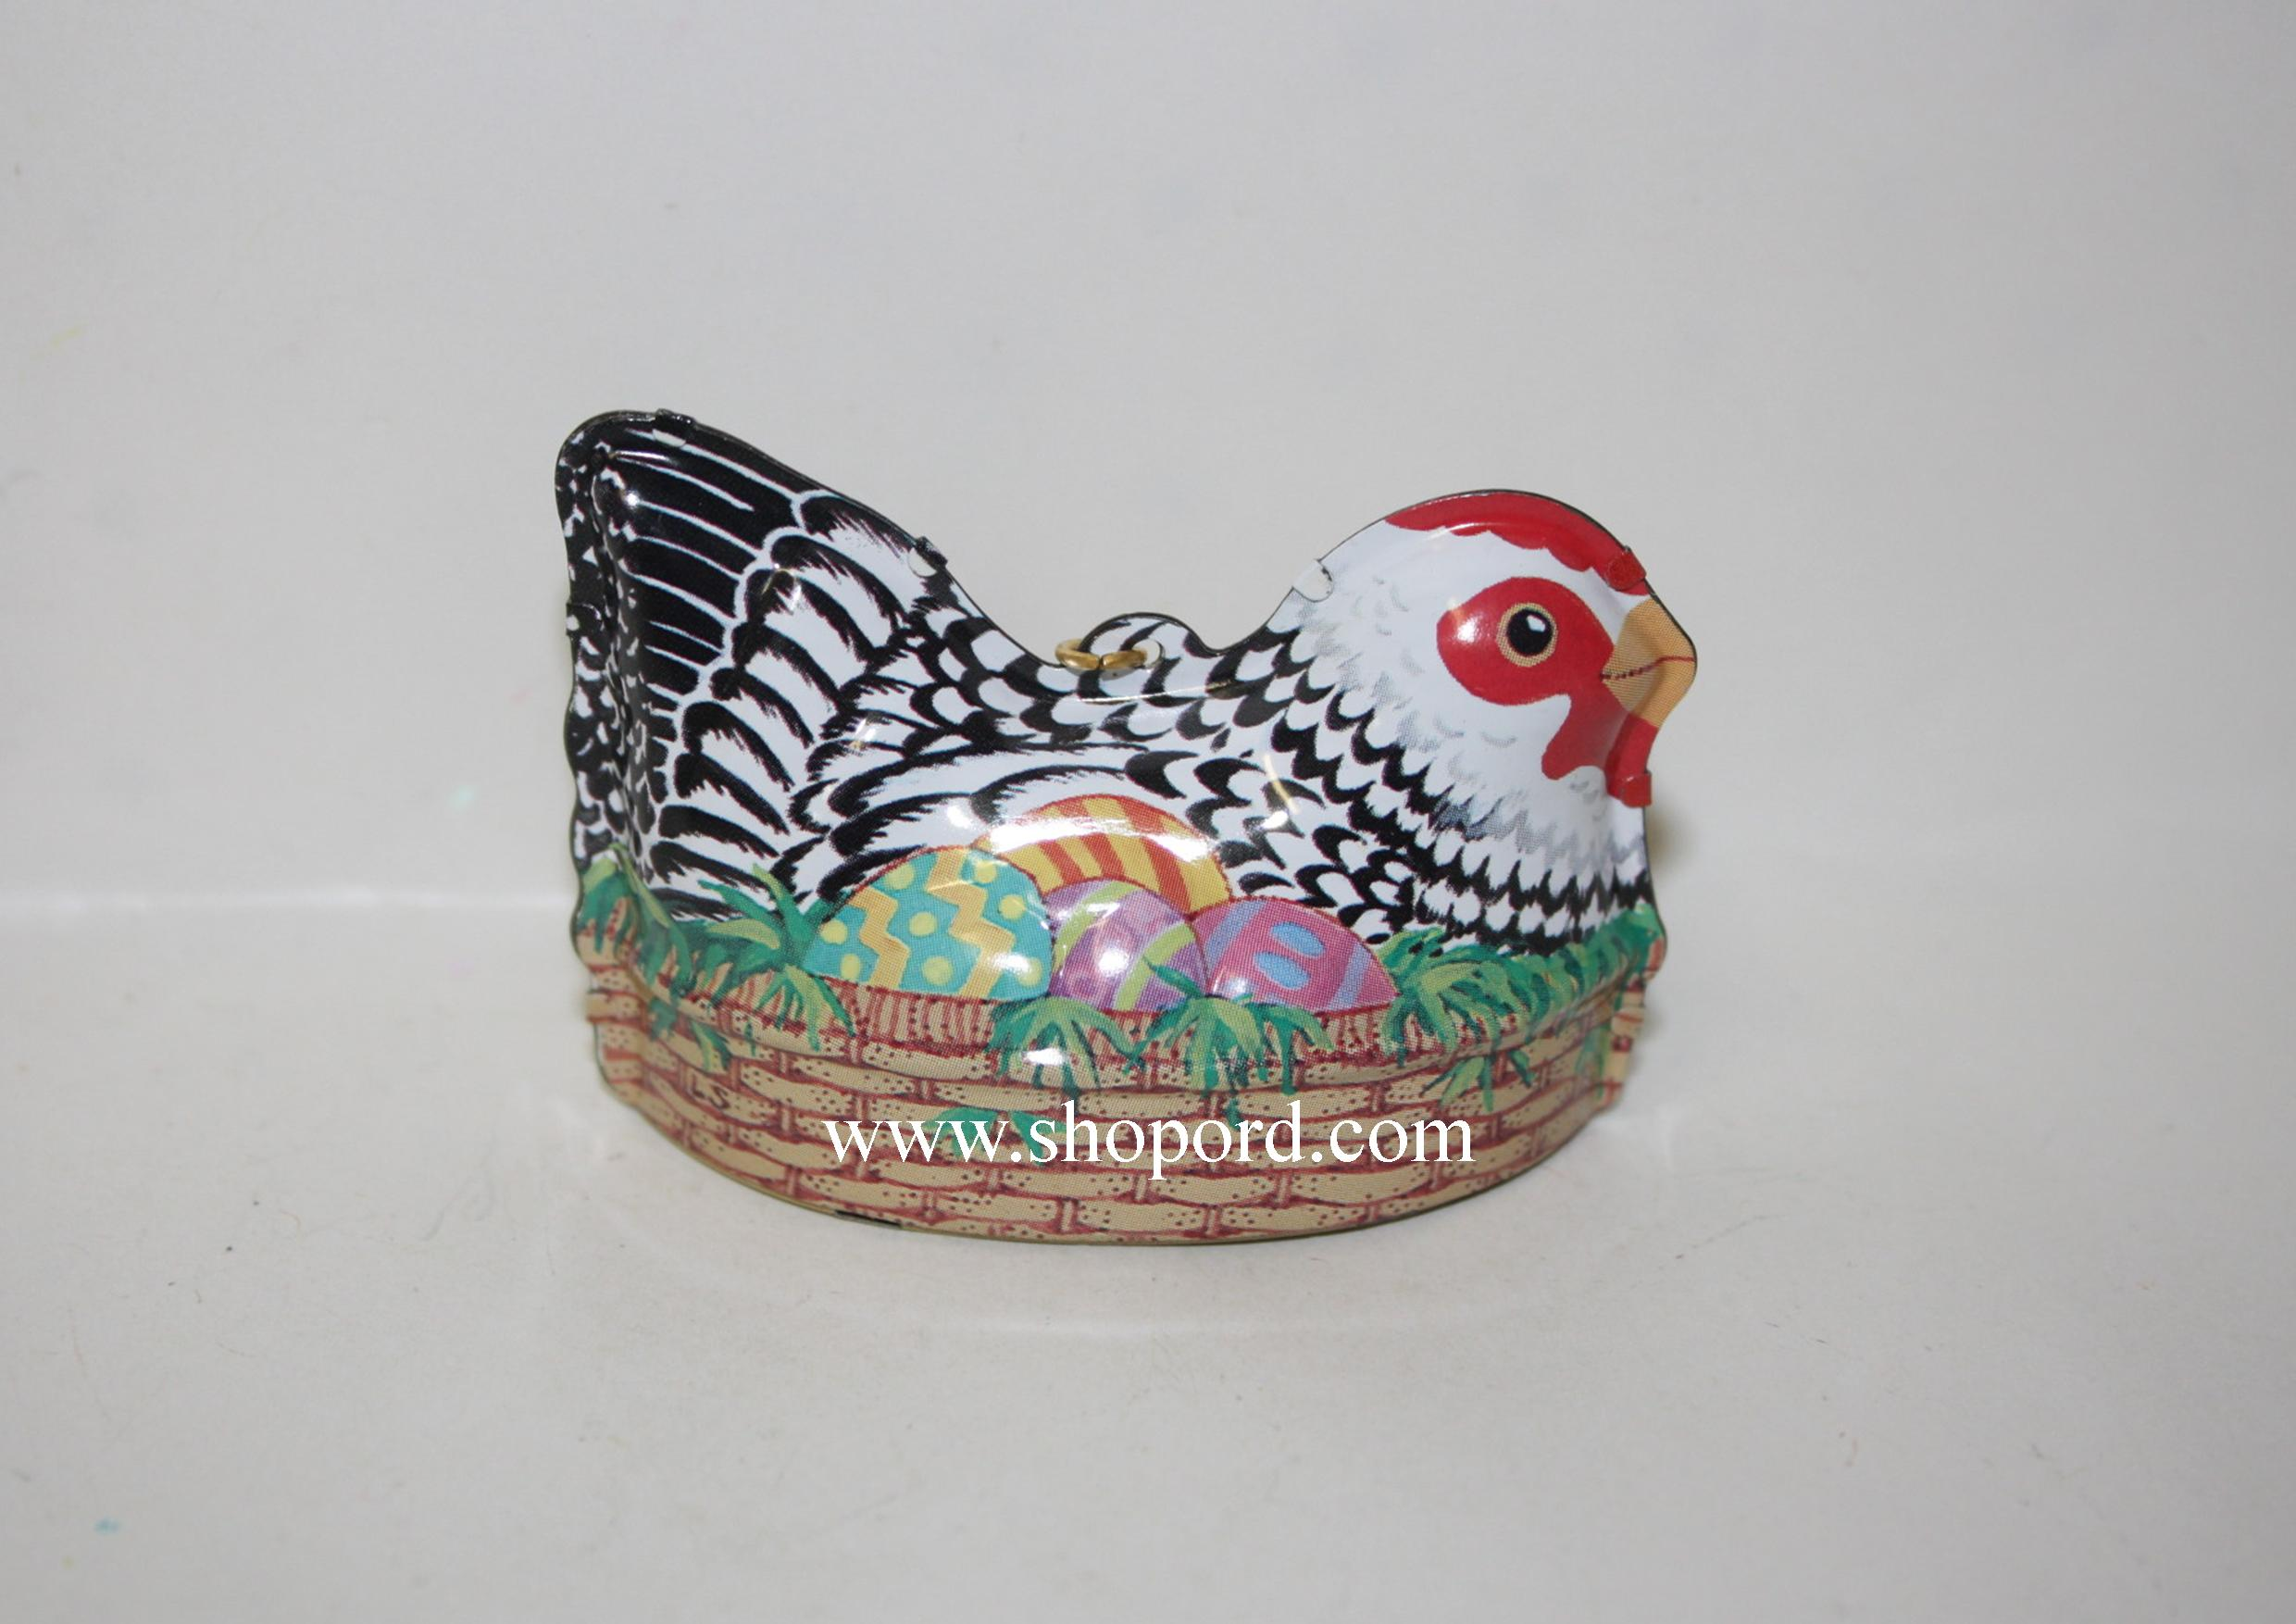 Hallmark 1999 Easter Egg Nest Spring Ornament Chicken QEO8427 Damaged Box